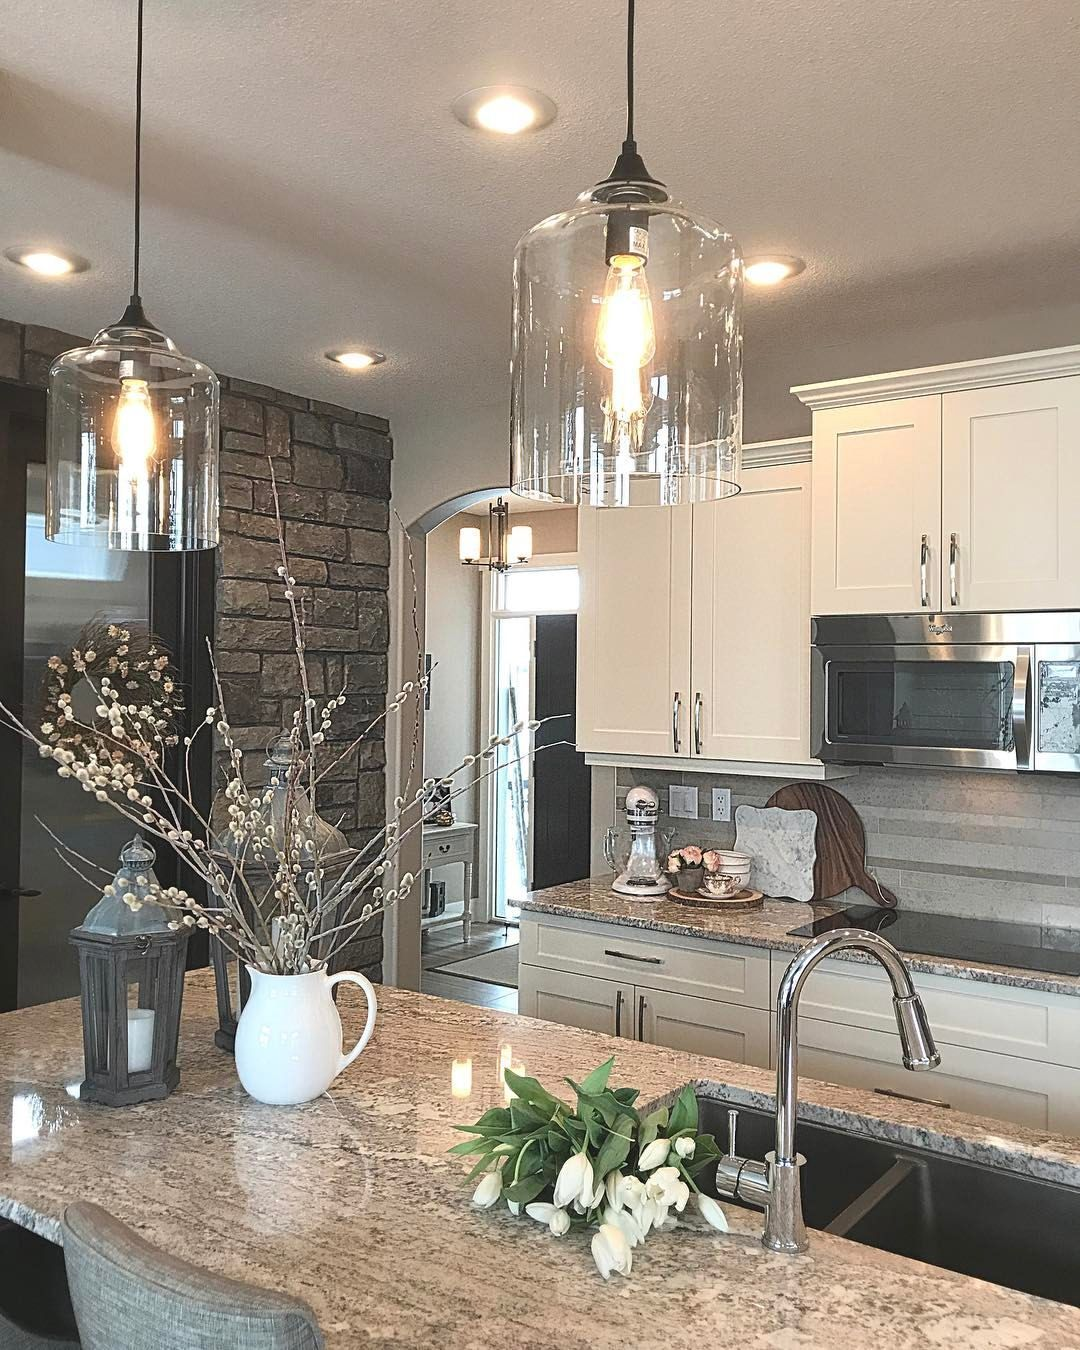 Kitchen Light Fixture Ideas: 20 Unique Kitchen Lighting Ideas For Your Wonderful